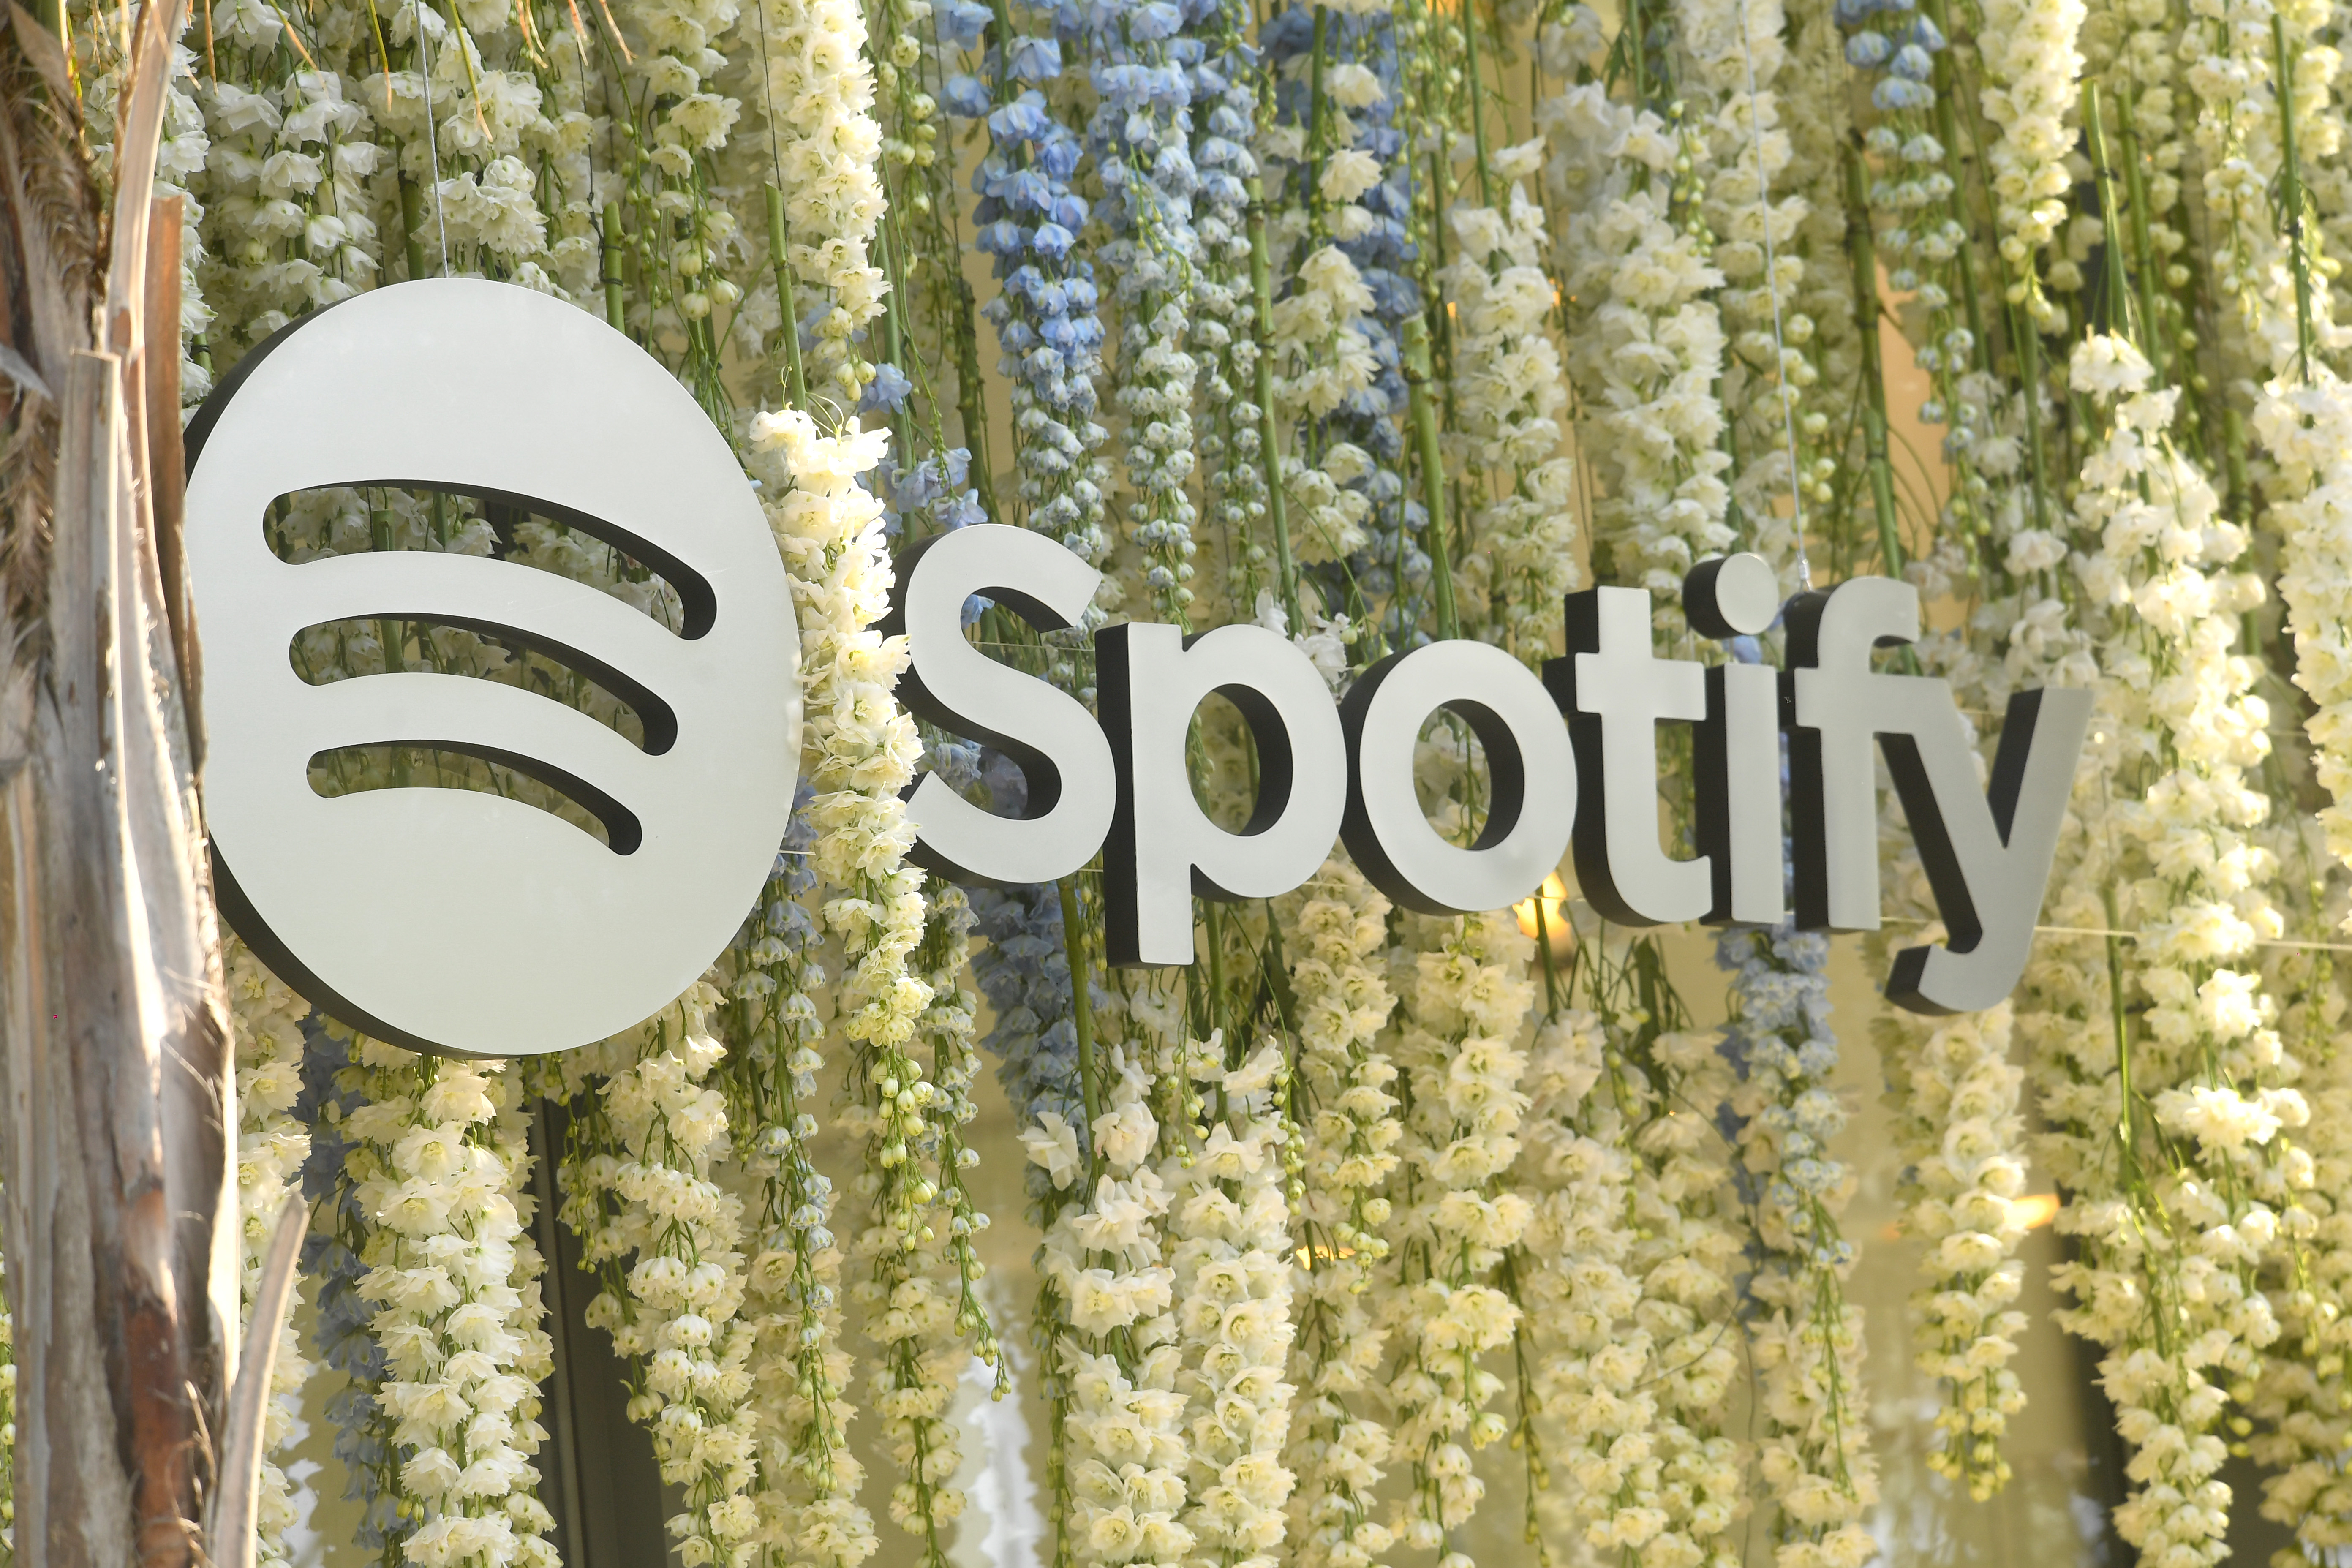 Silver spotify logo hangs among flowers